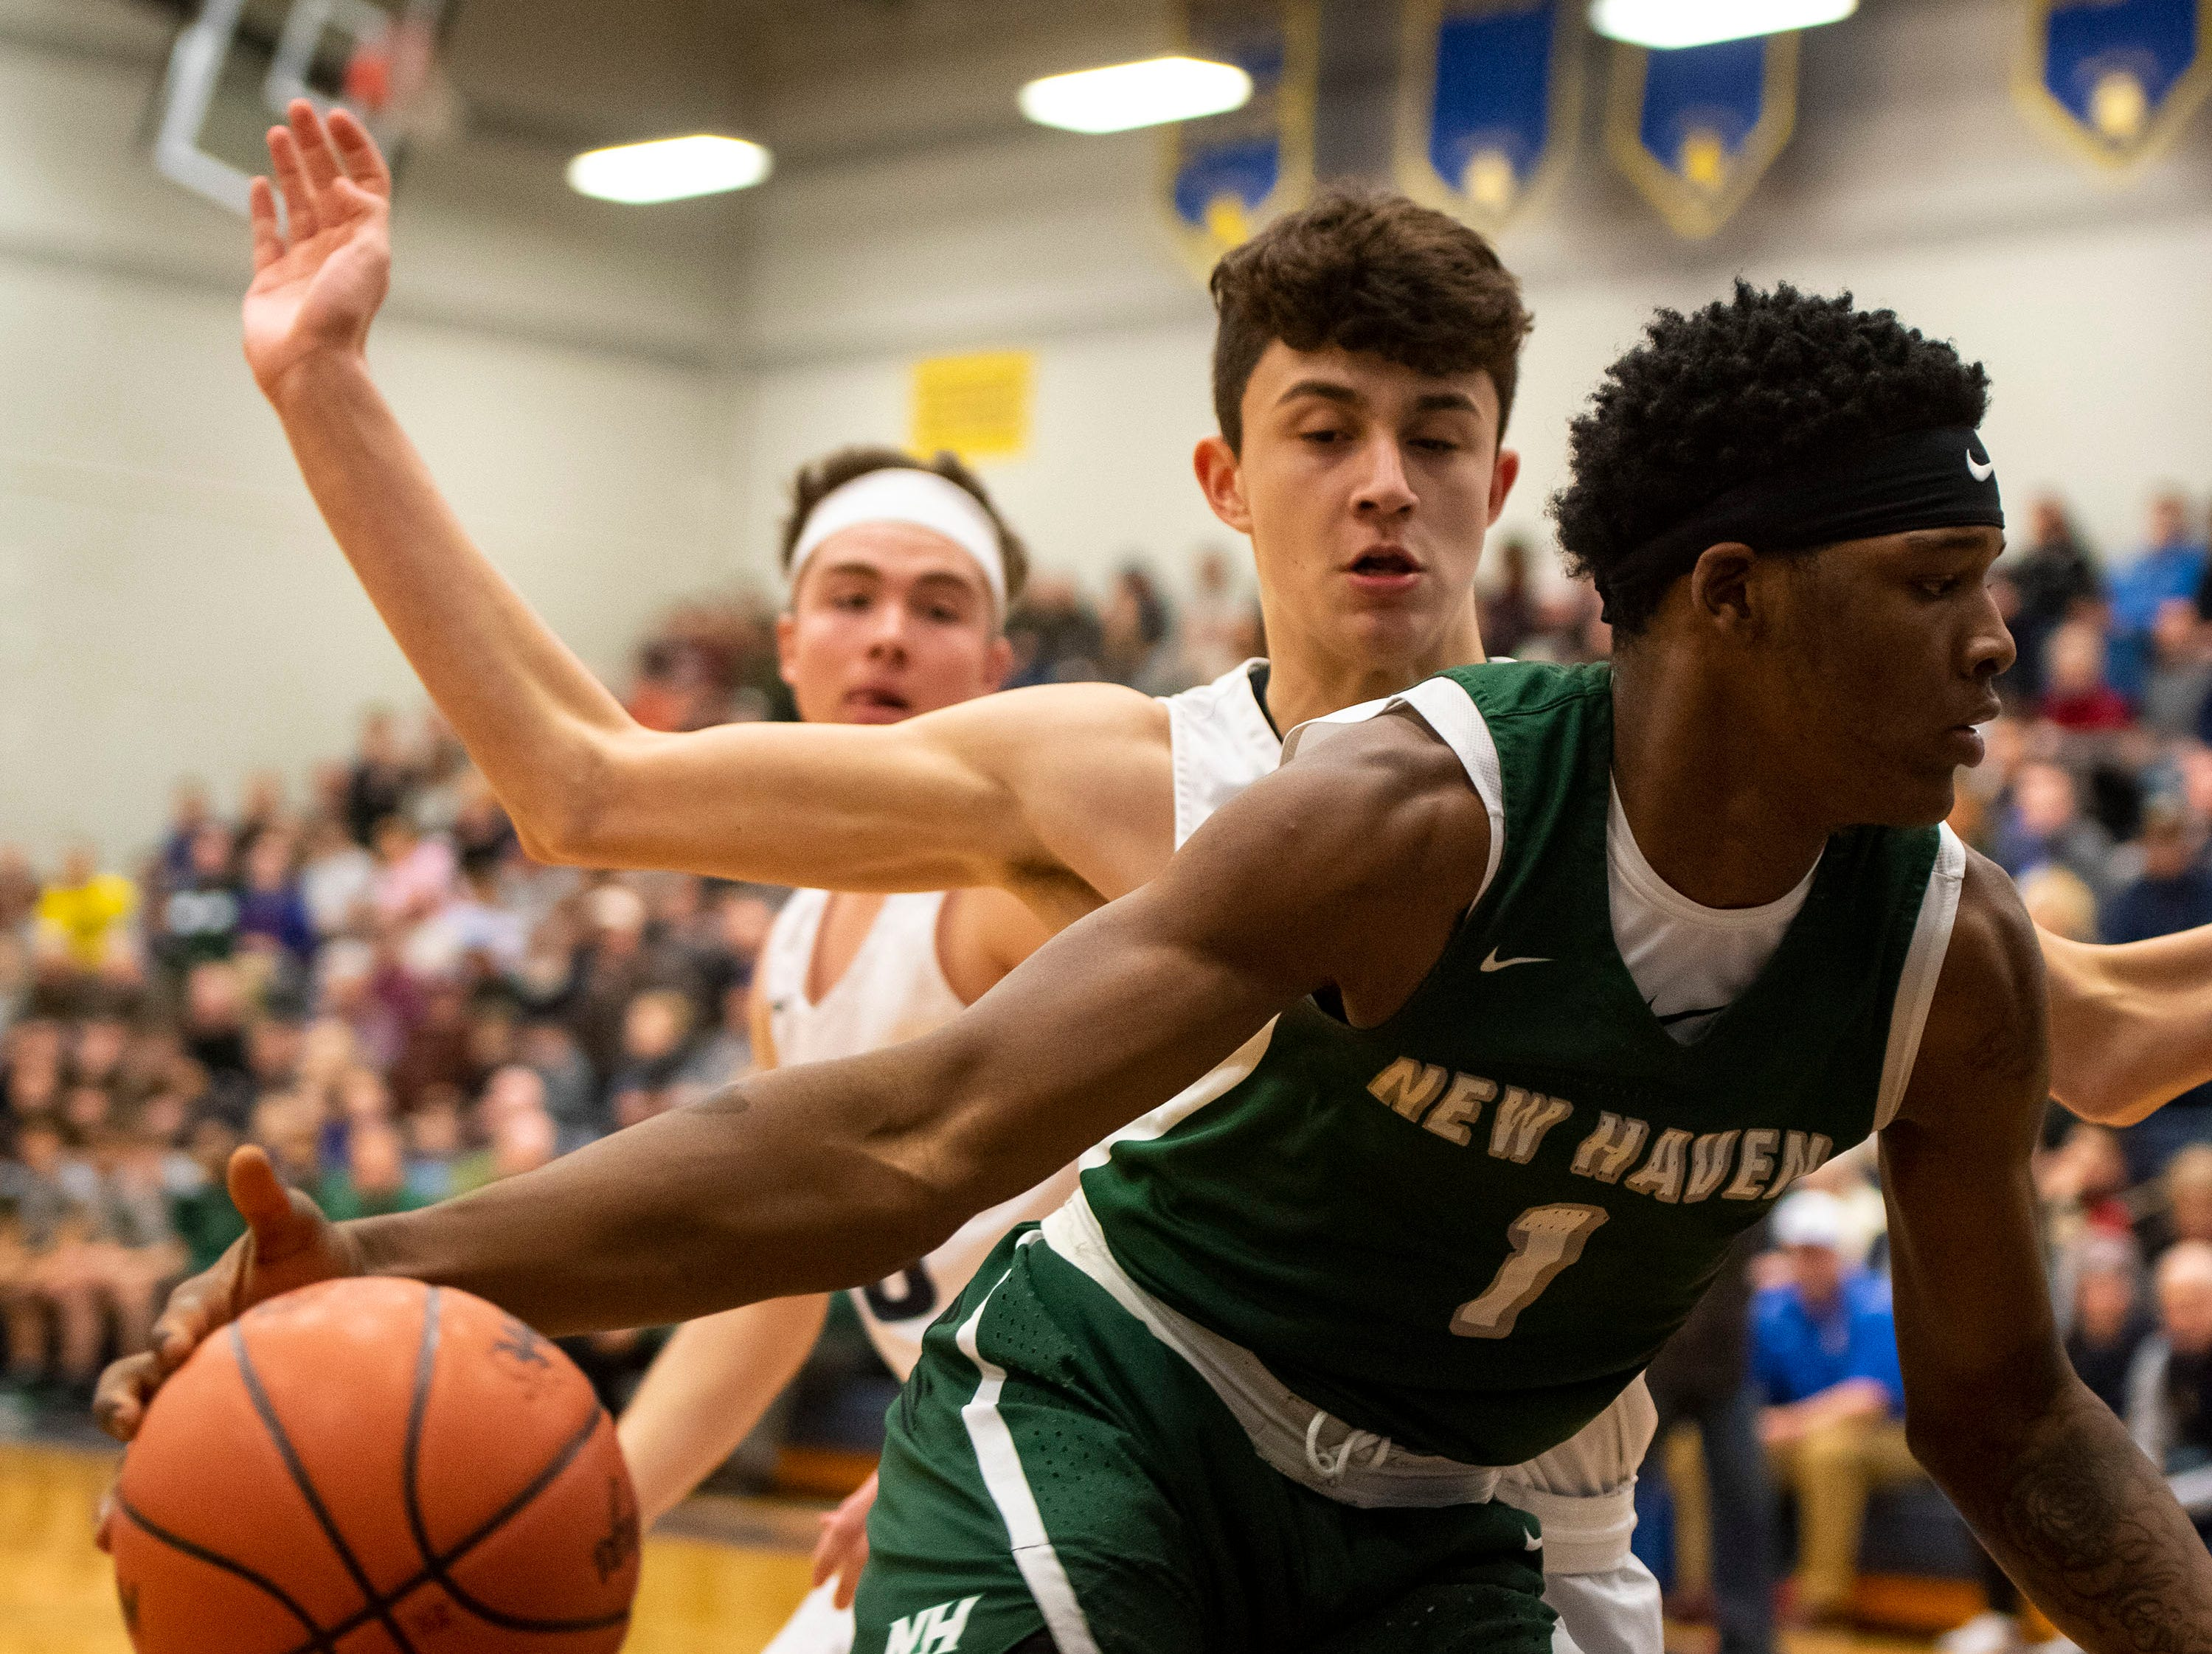 New Haven High School's Romeo Weems (1) pushes around Goodrich's Aiden Rubio in the MHSAA District 2 basketball regionals Tuesday, March 5, 2019 at Imlay City High School.